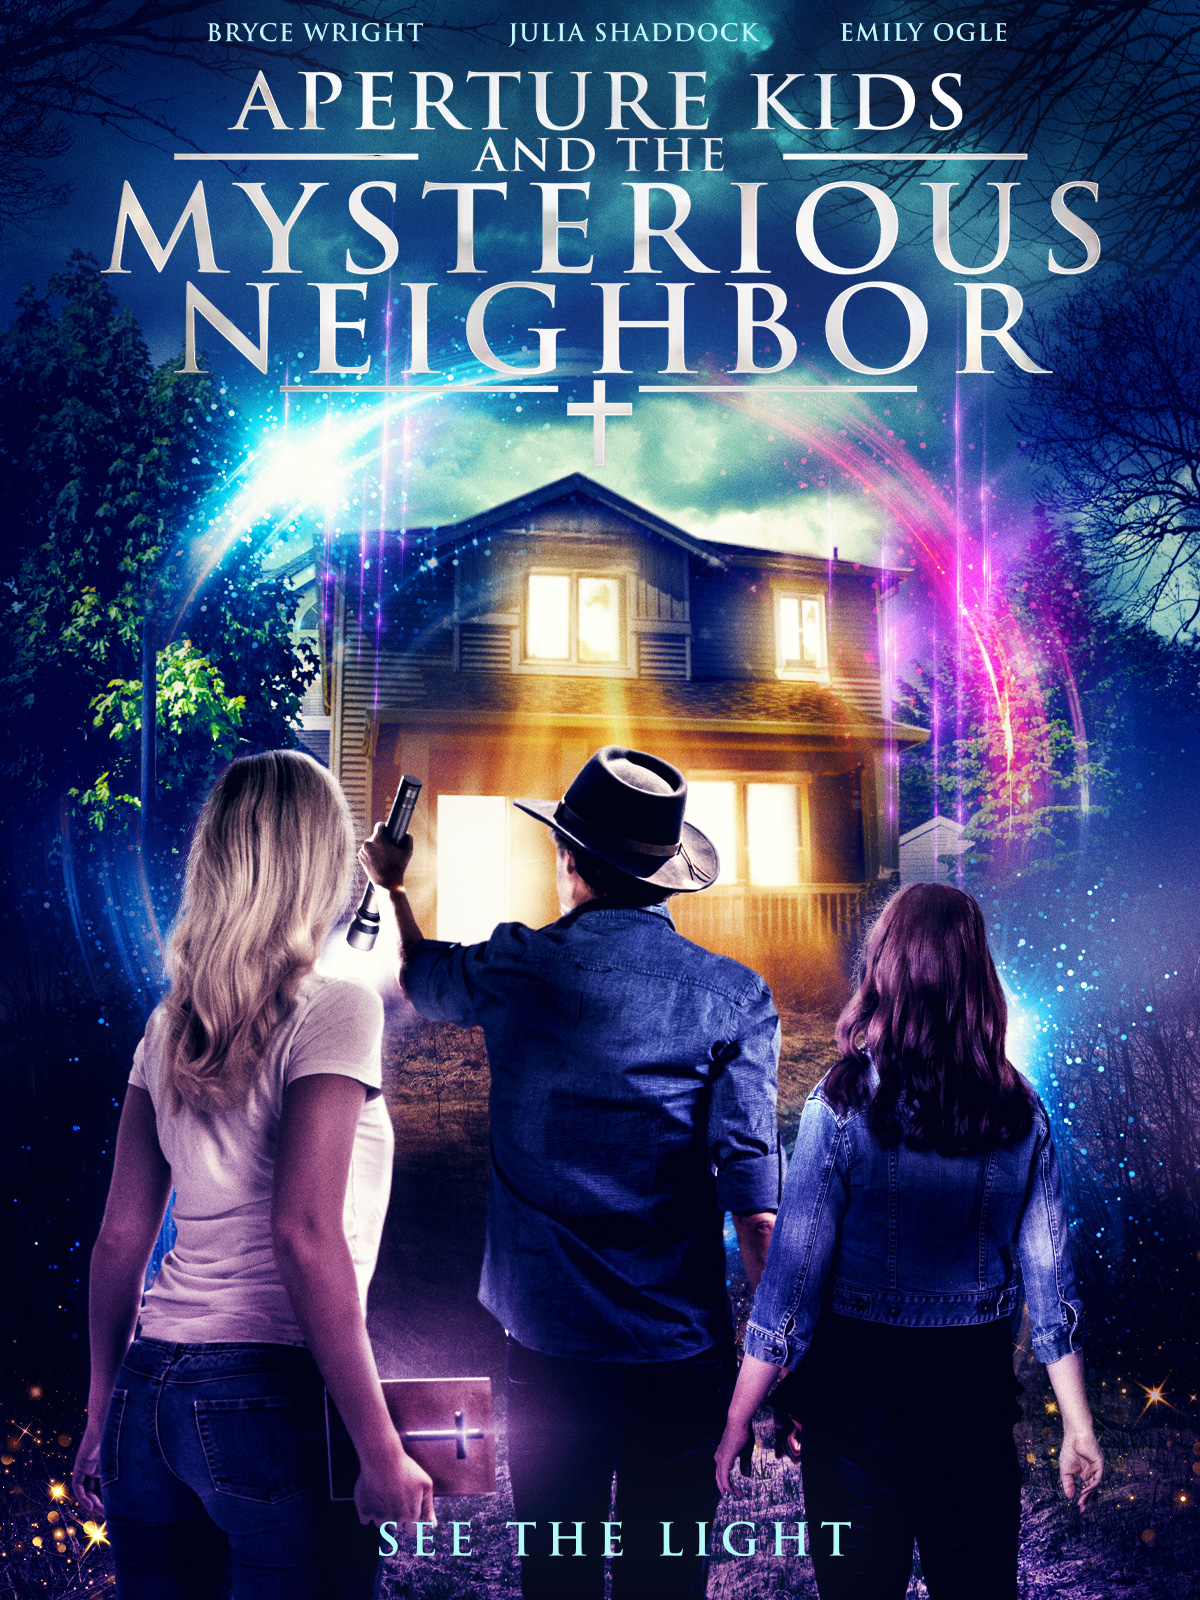 Aperture Kids and the Mysterious Neighbor poster image